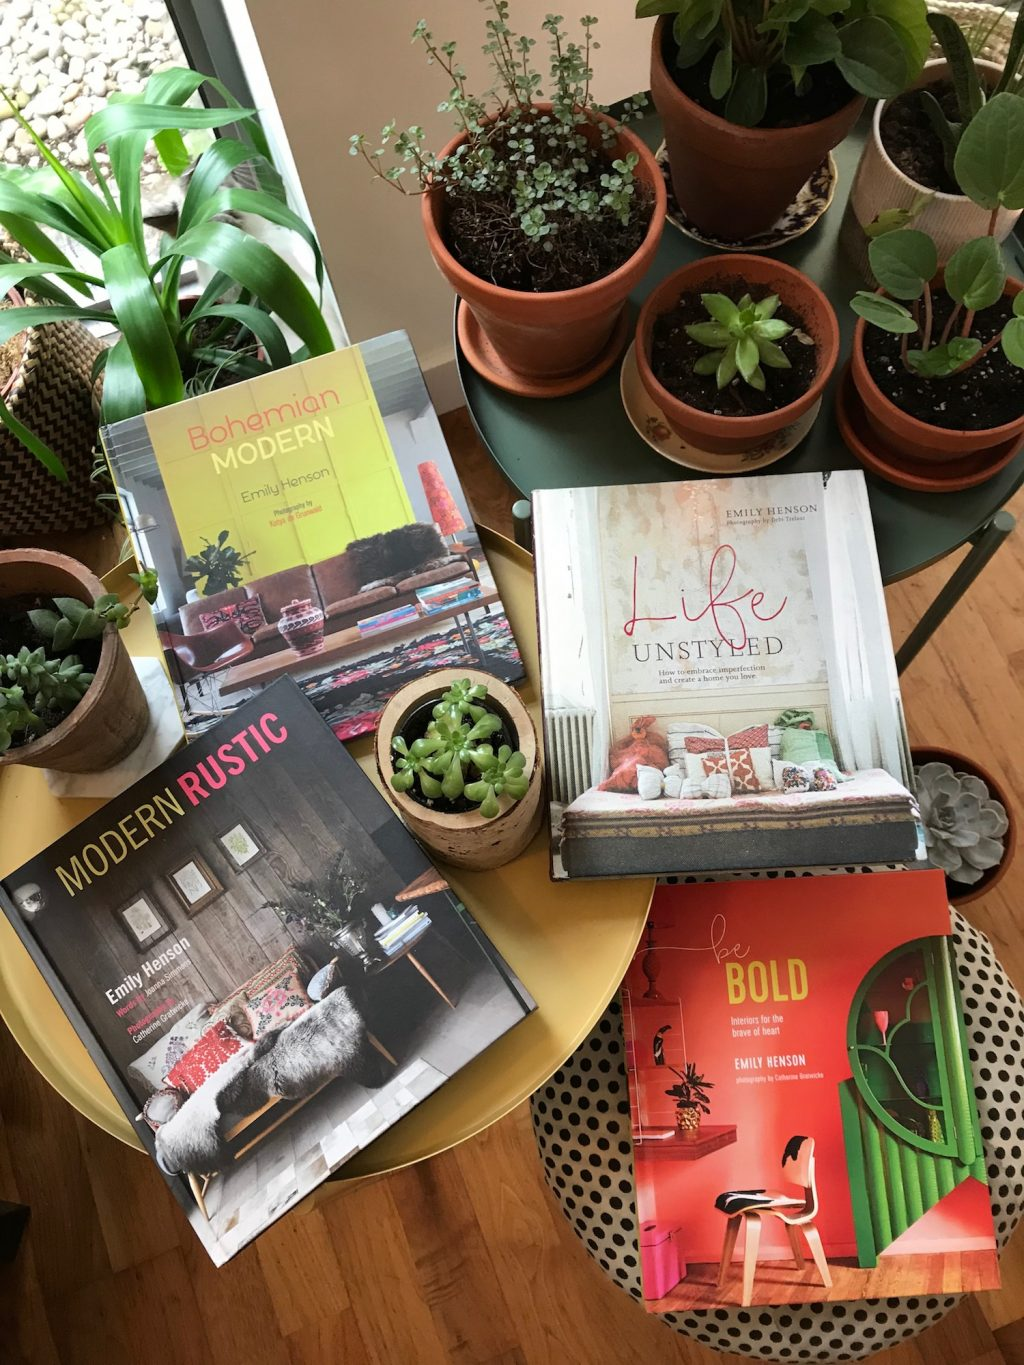 Emily Henson's four interiors books surrounded by plants